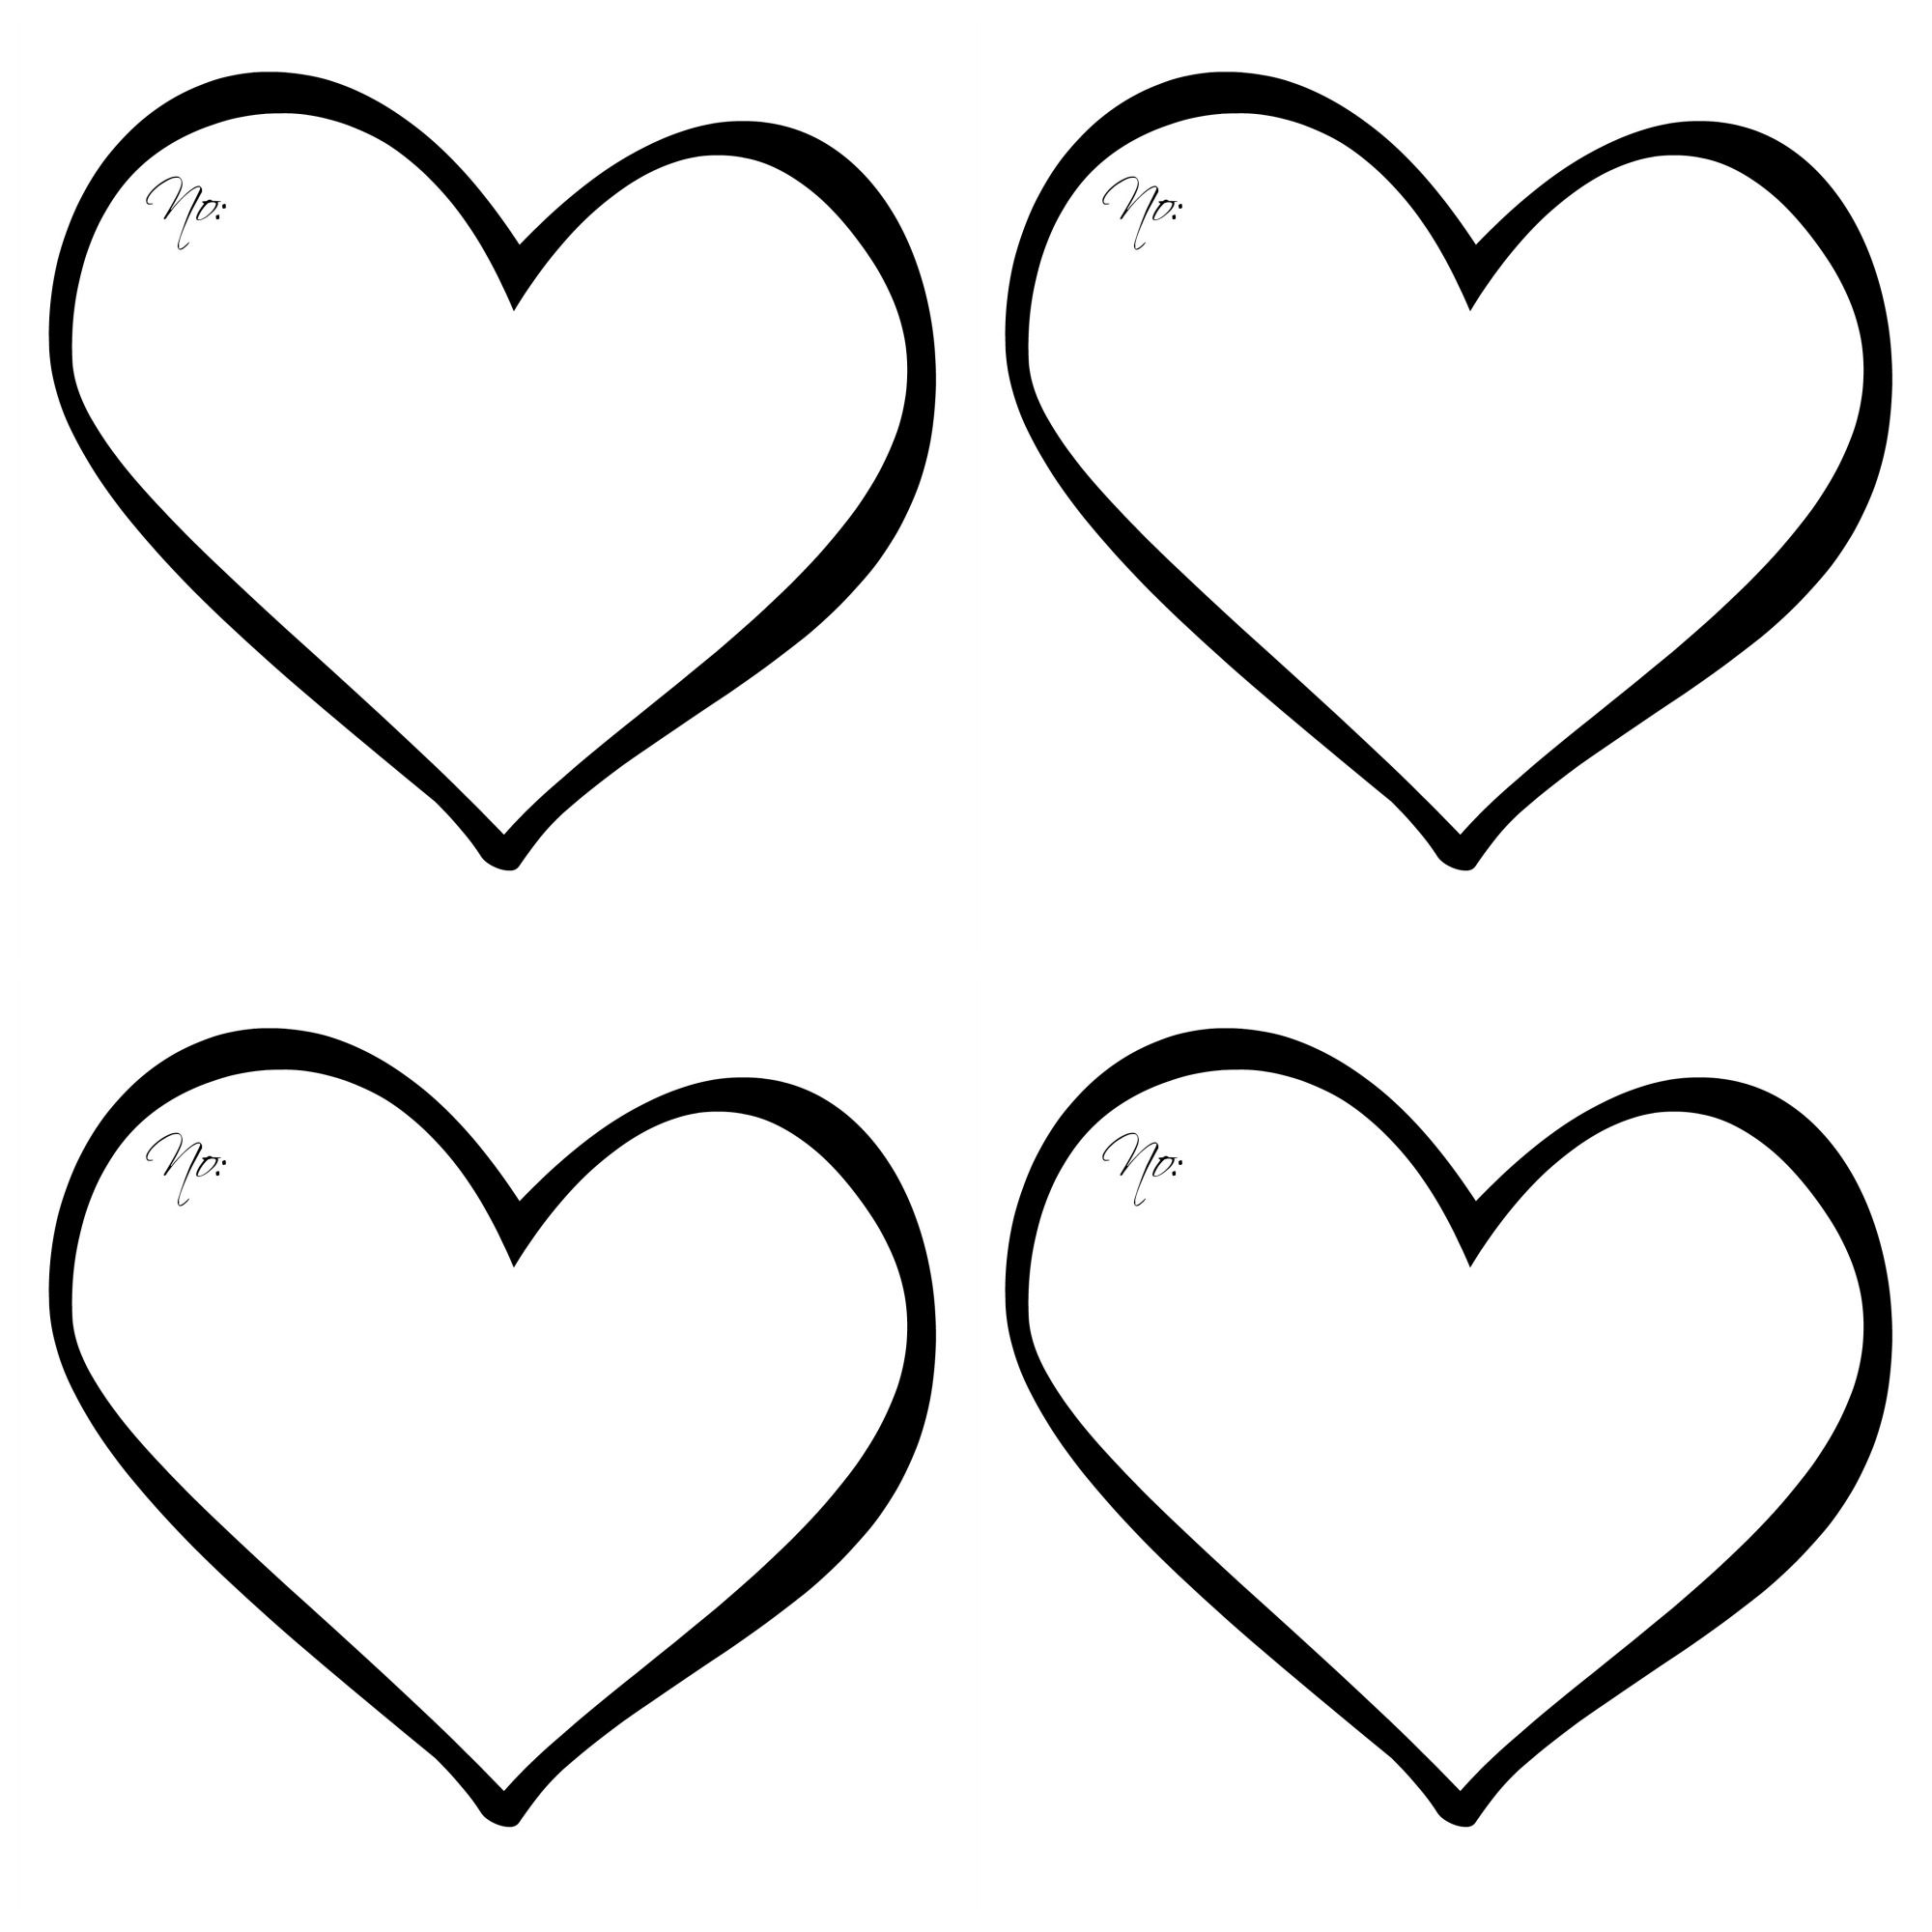 double heart coloring pages - photo#13